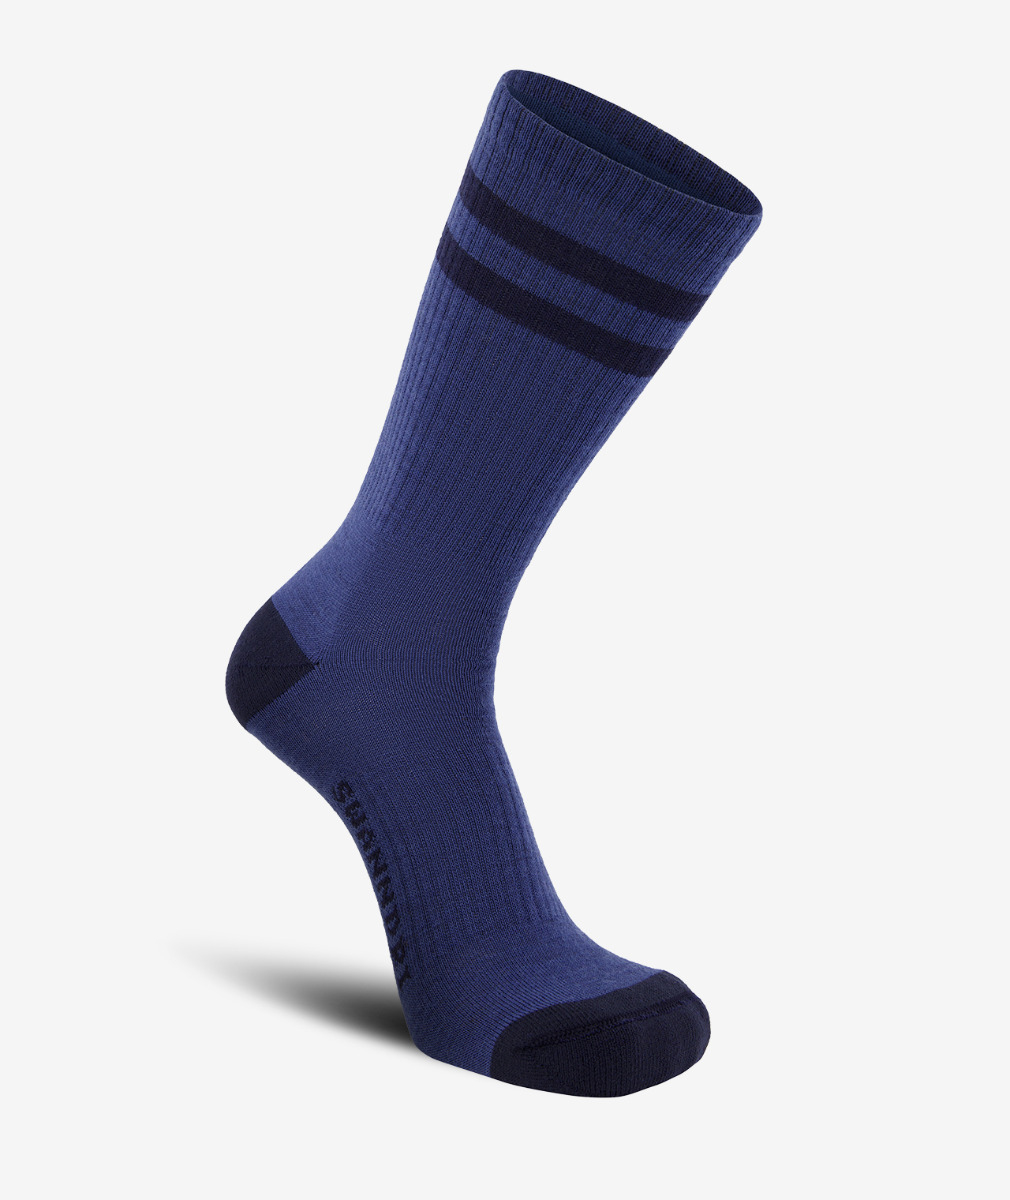 Swanndri Colombo Merino Blend Socks in Blue